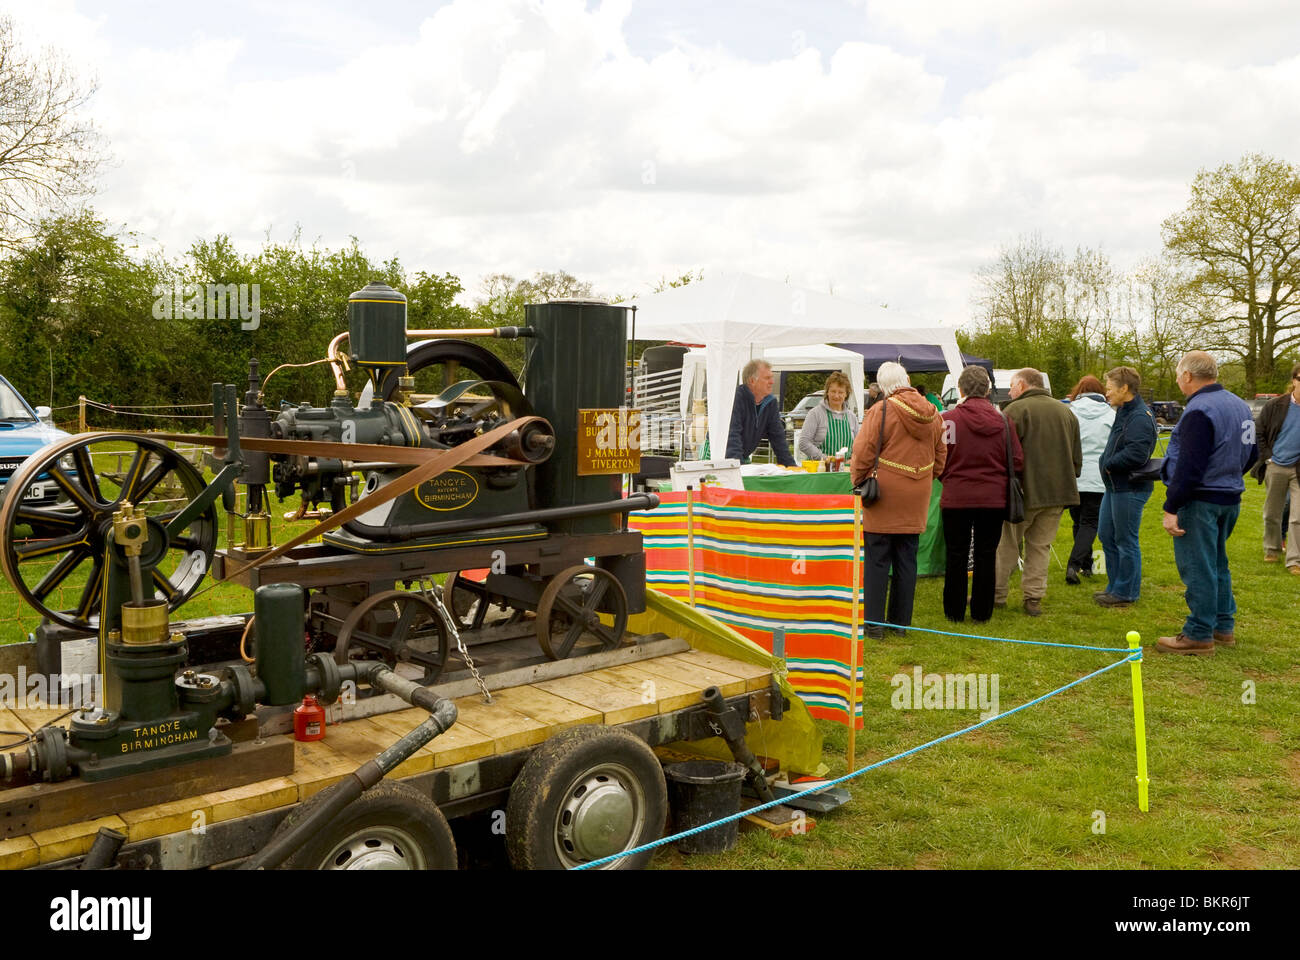 country county show with traction engine in foreground and onlookers in background, Devon England UK 2010 - Stock Image